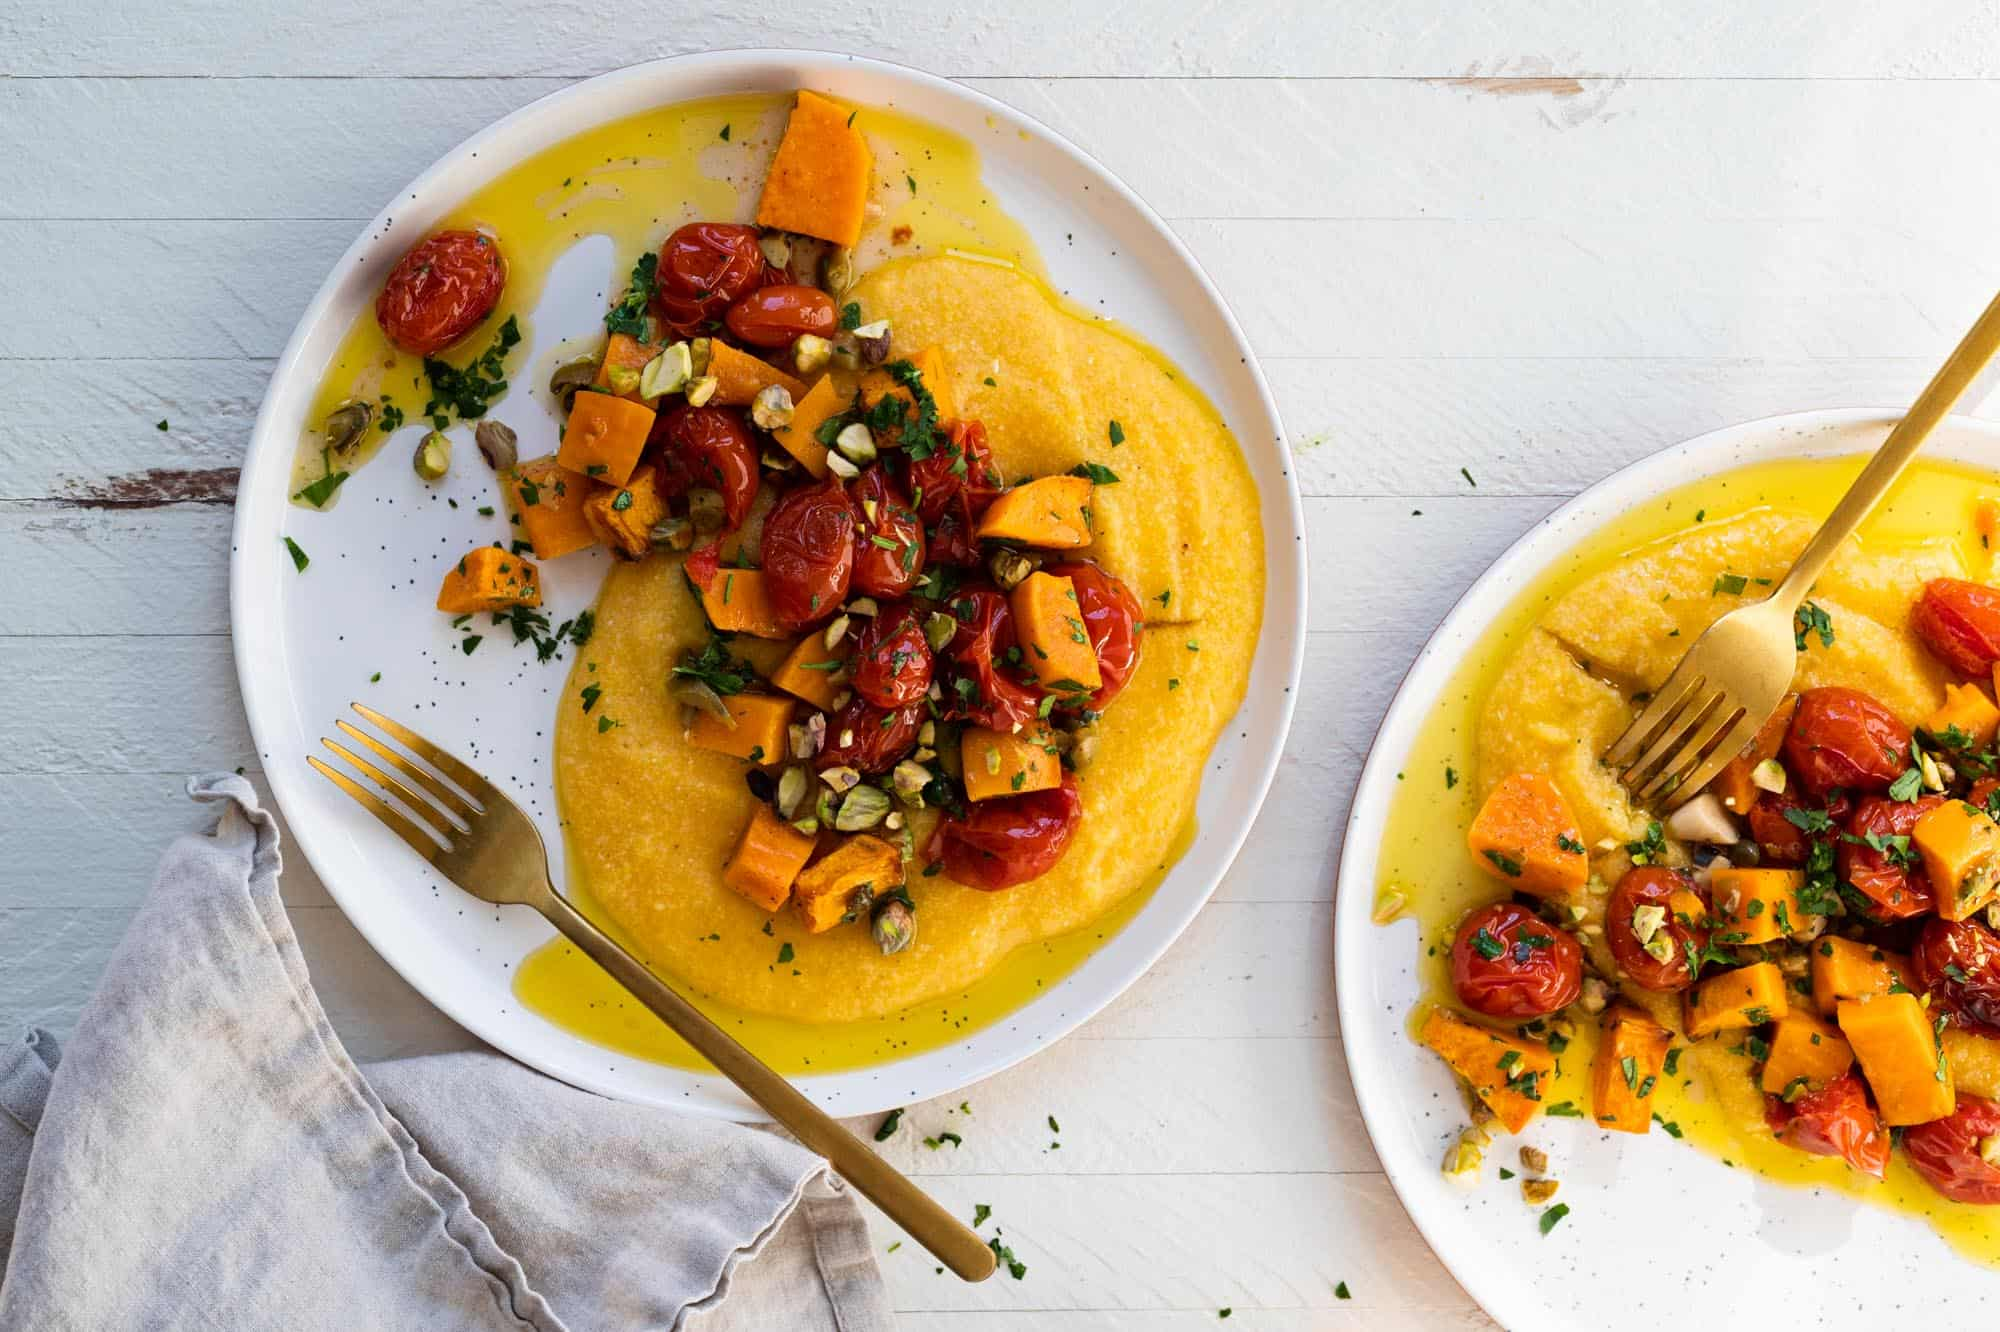 Vegan Grits Bowls with Roasted Sweet Potatoes and Tomatoes -- an easy weeknight vegan sheetpan meal (via thepigandquill.com)